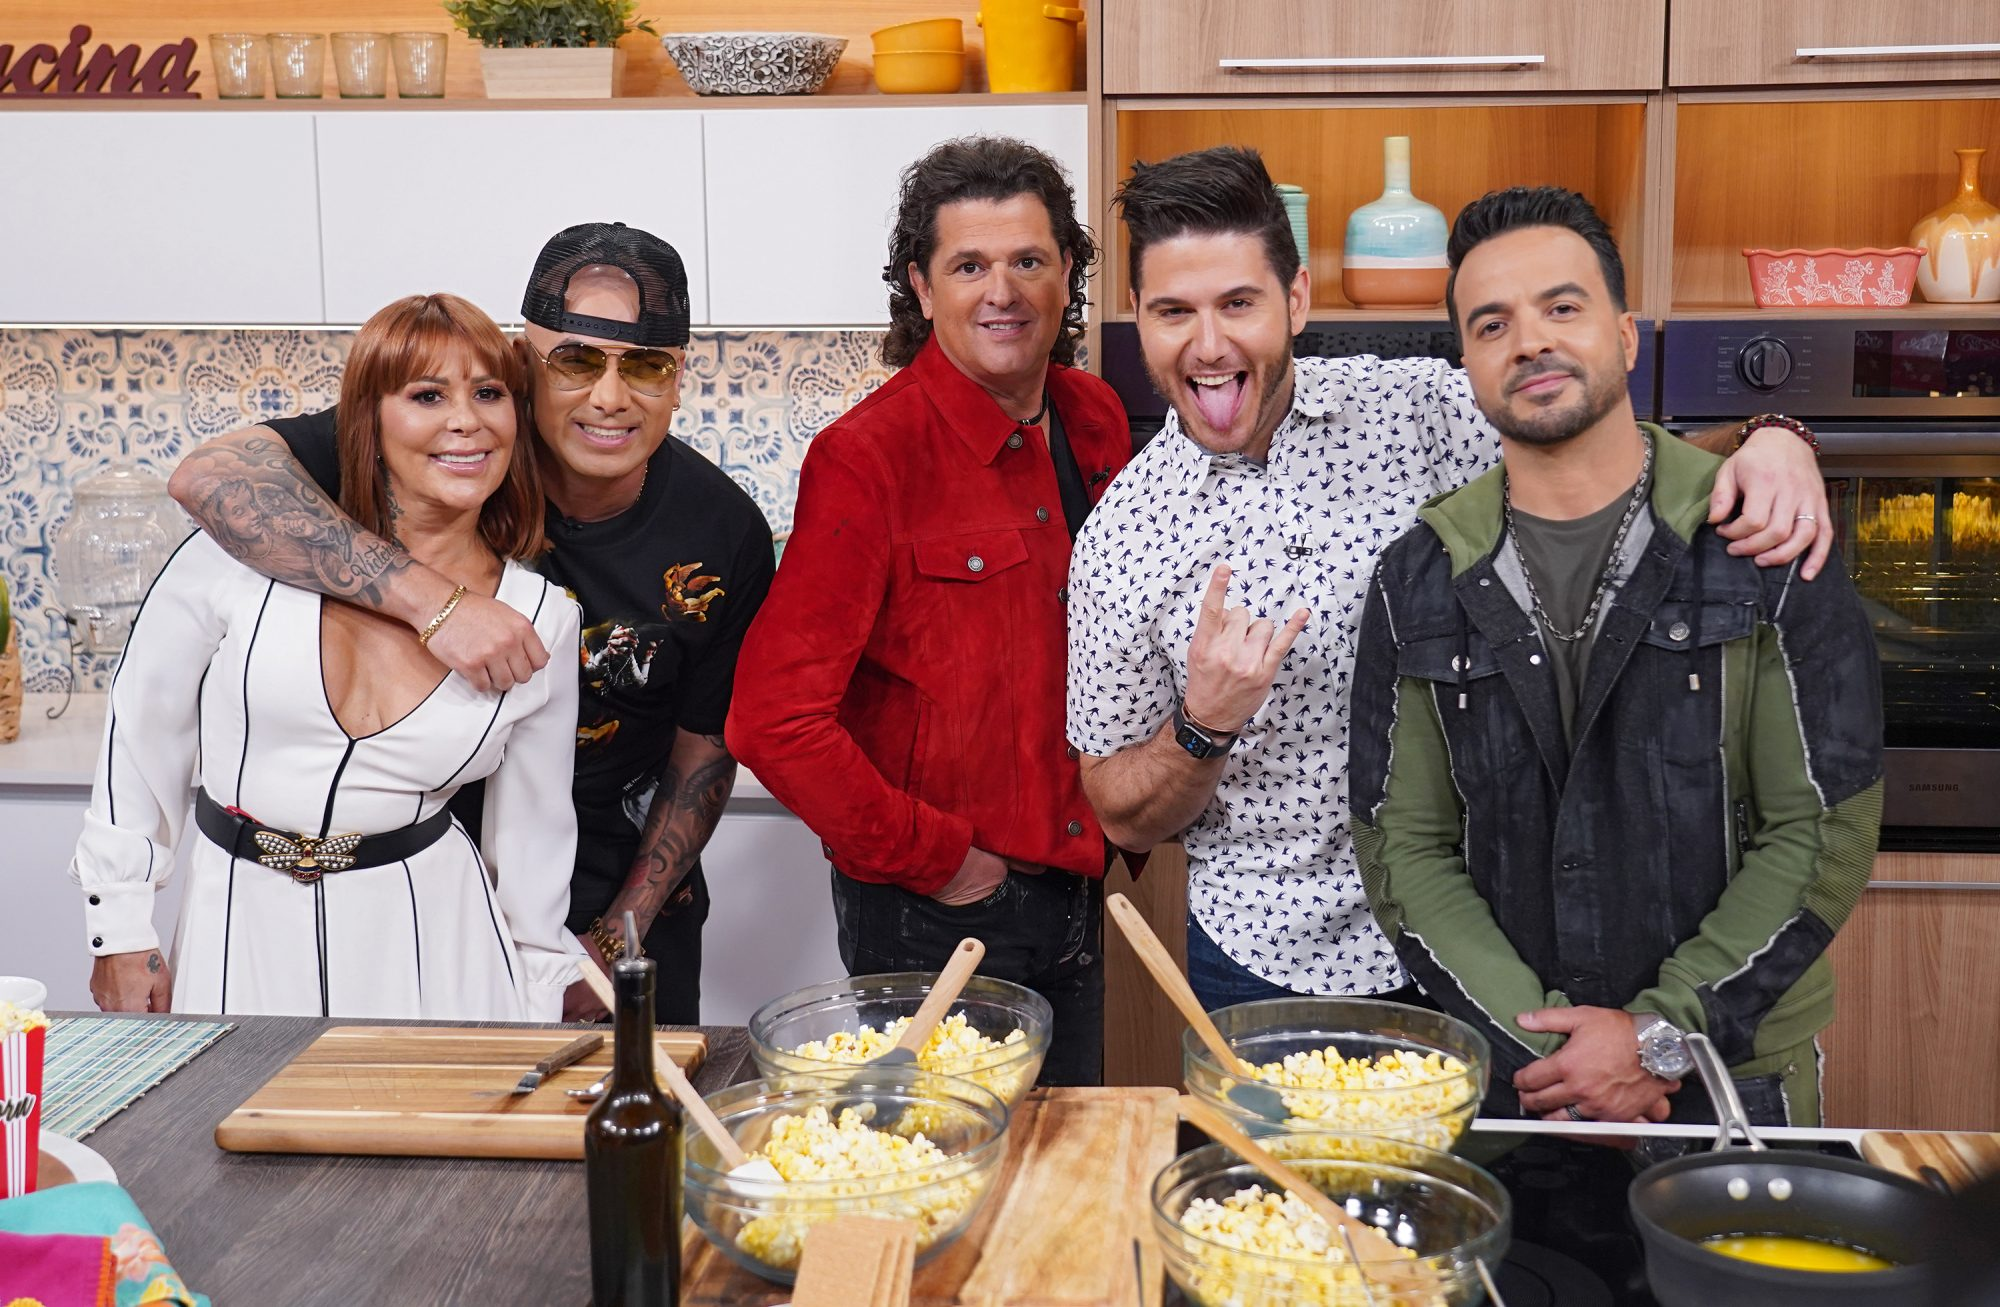 Alejandra Guzman, Wisin, Carlos Vives, Chef James y Luis Fonsi.